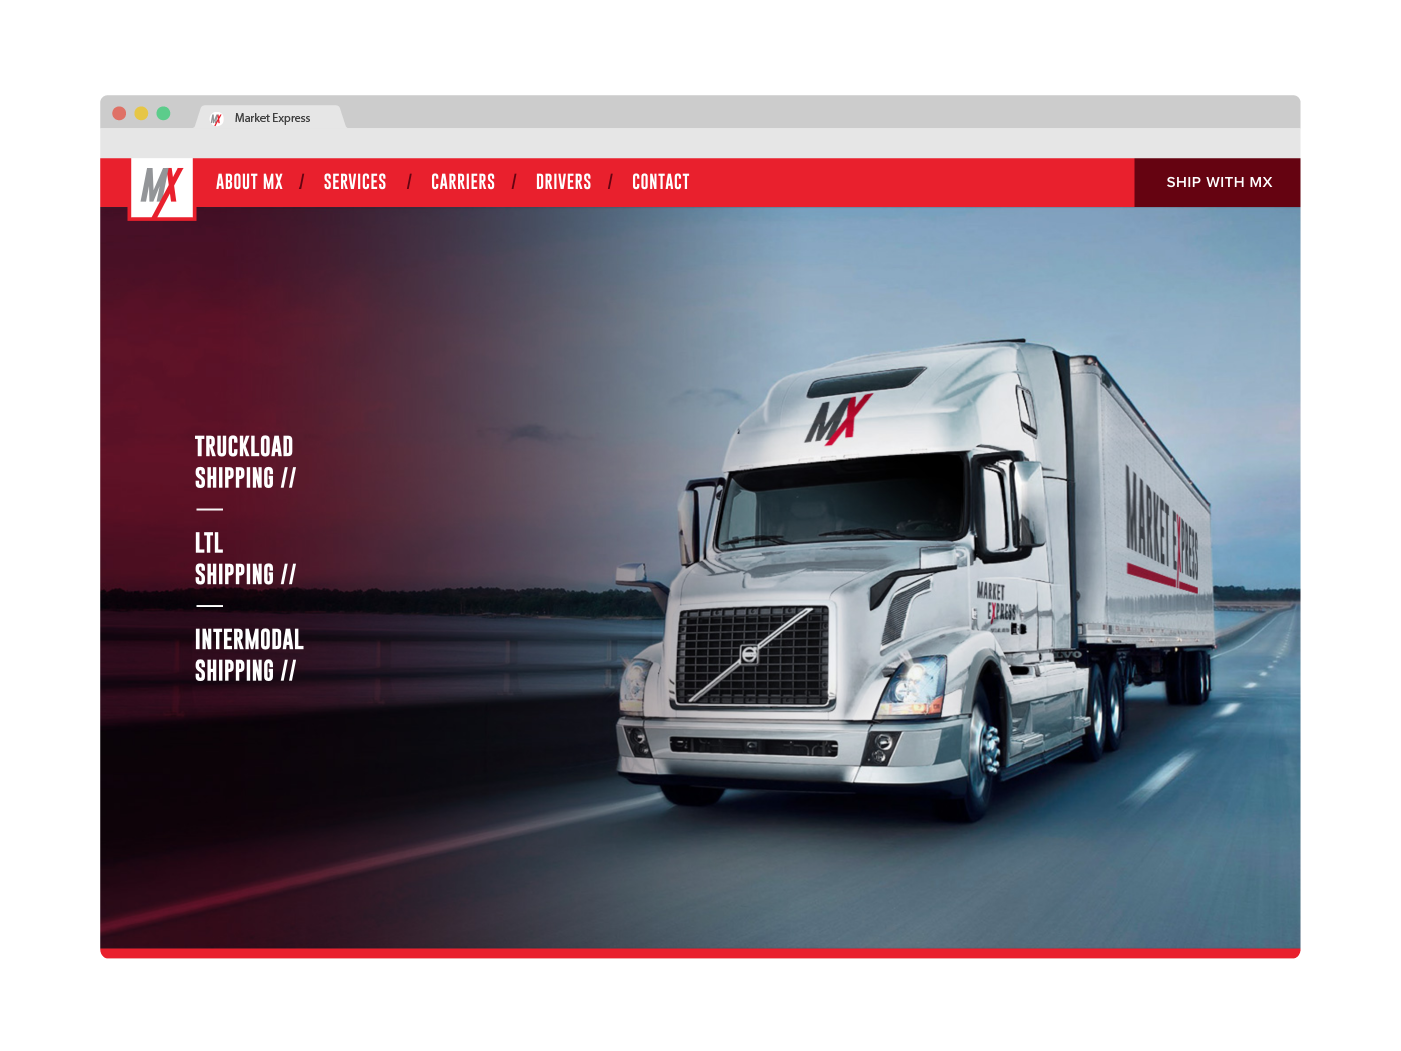 Market Express trucking website - homepage navigation